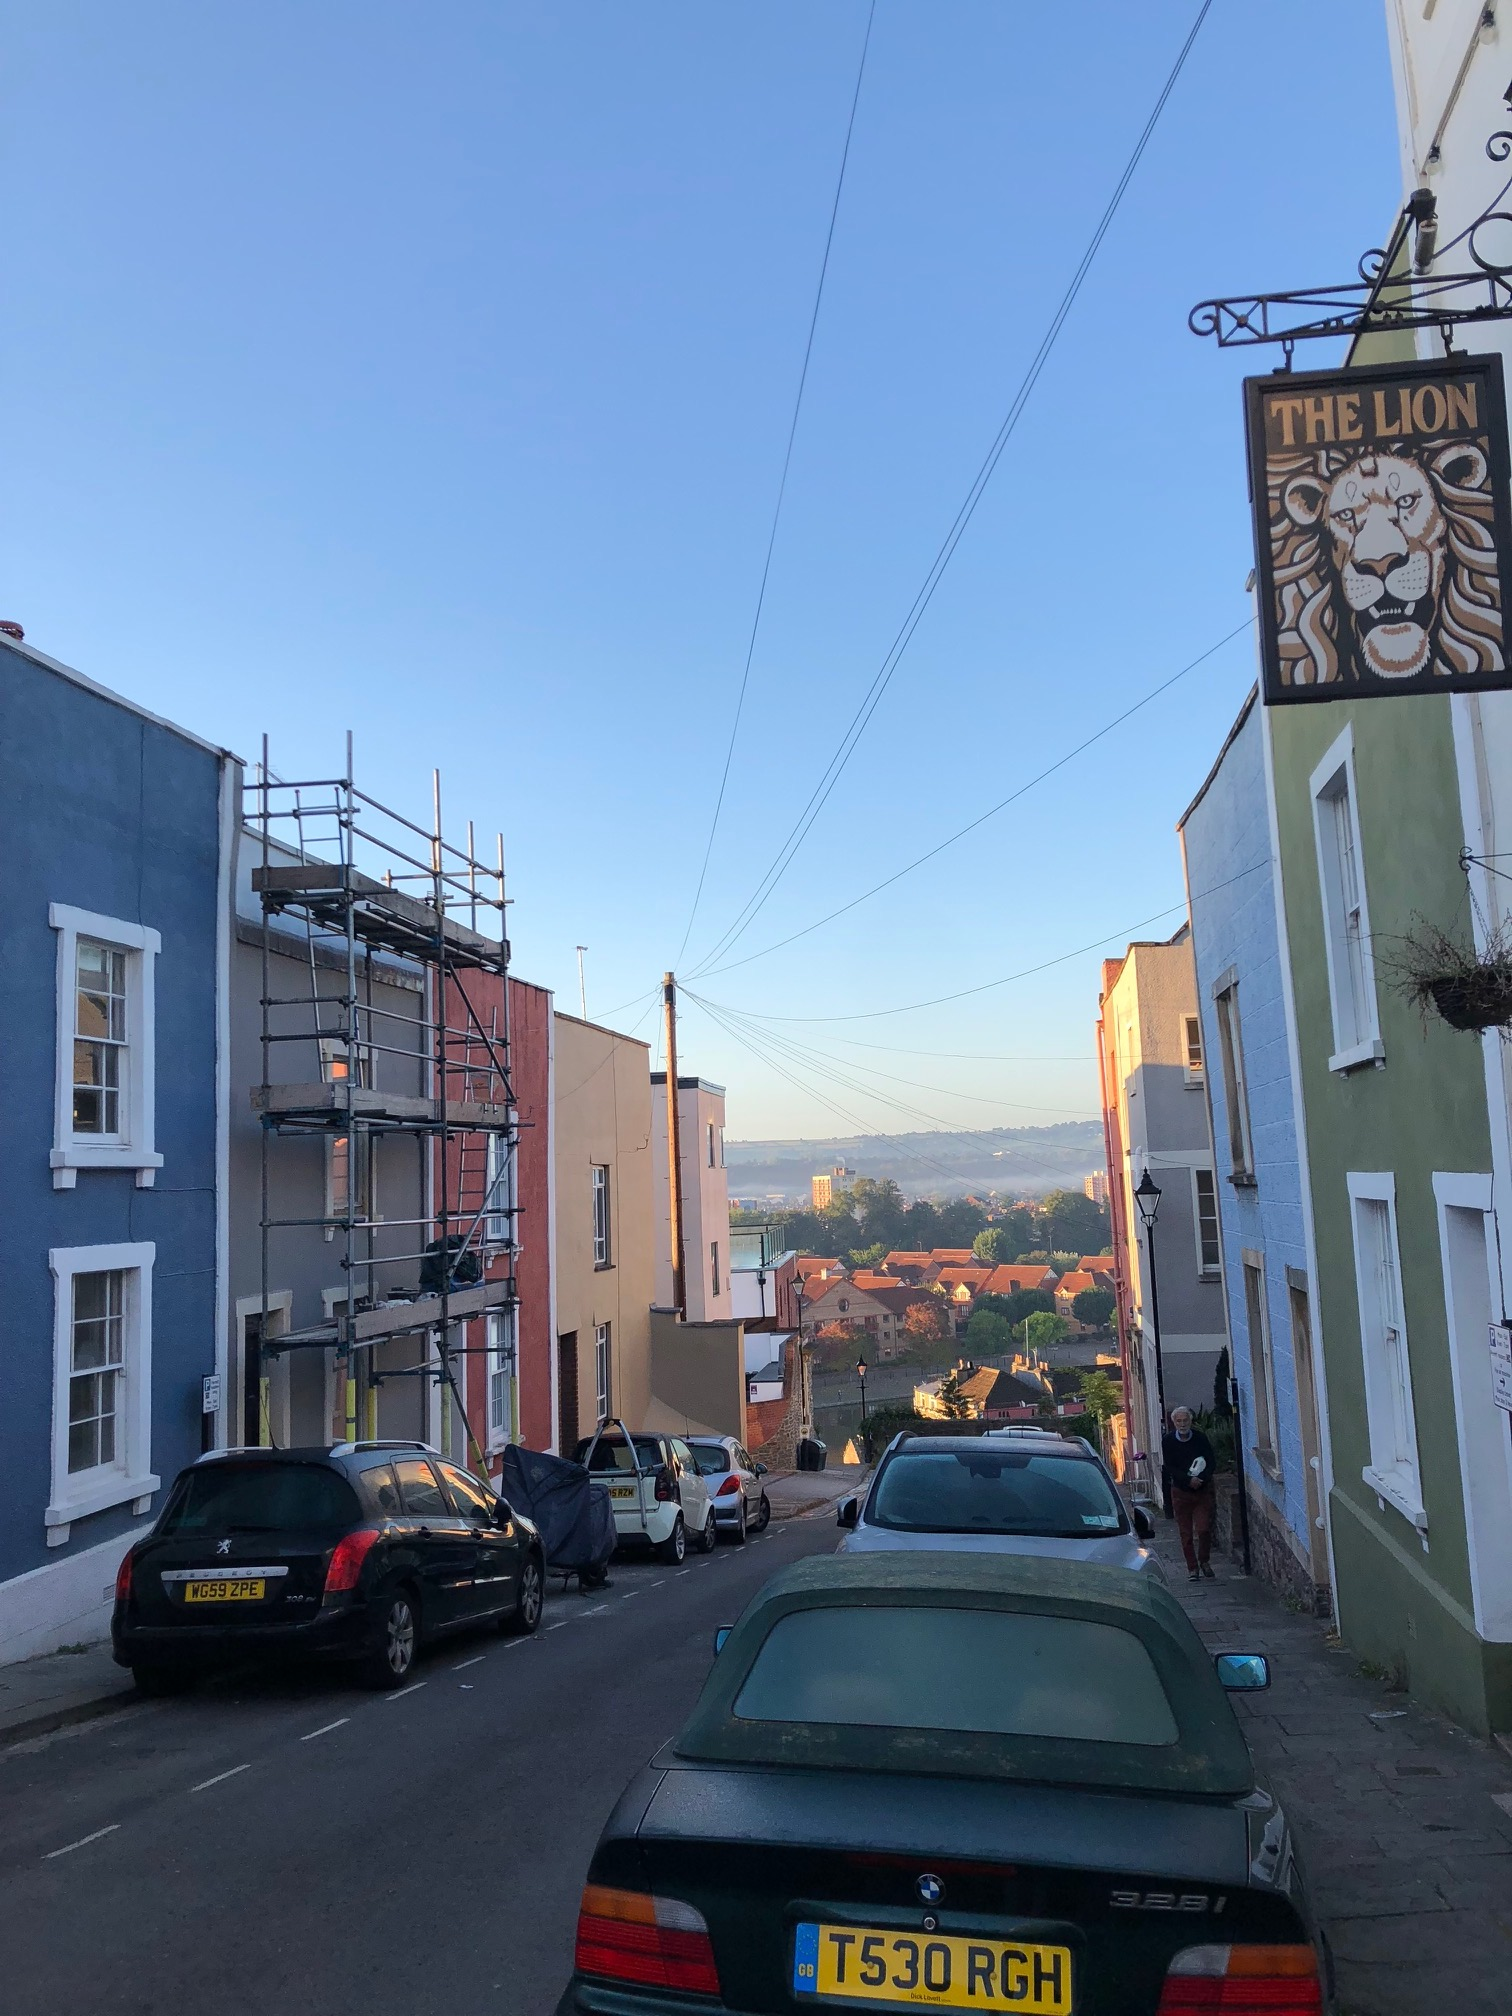 This is a photo of Bristol in 2018, by Cliftonwood Crescent.